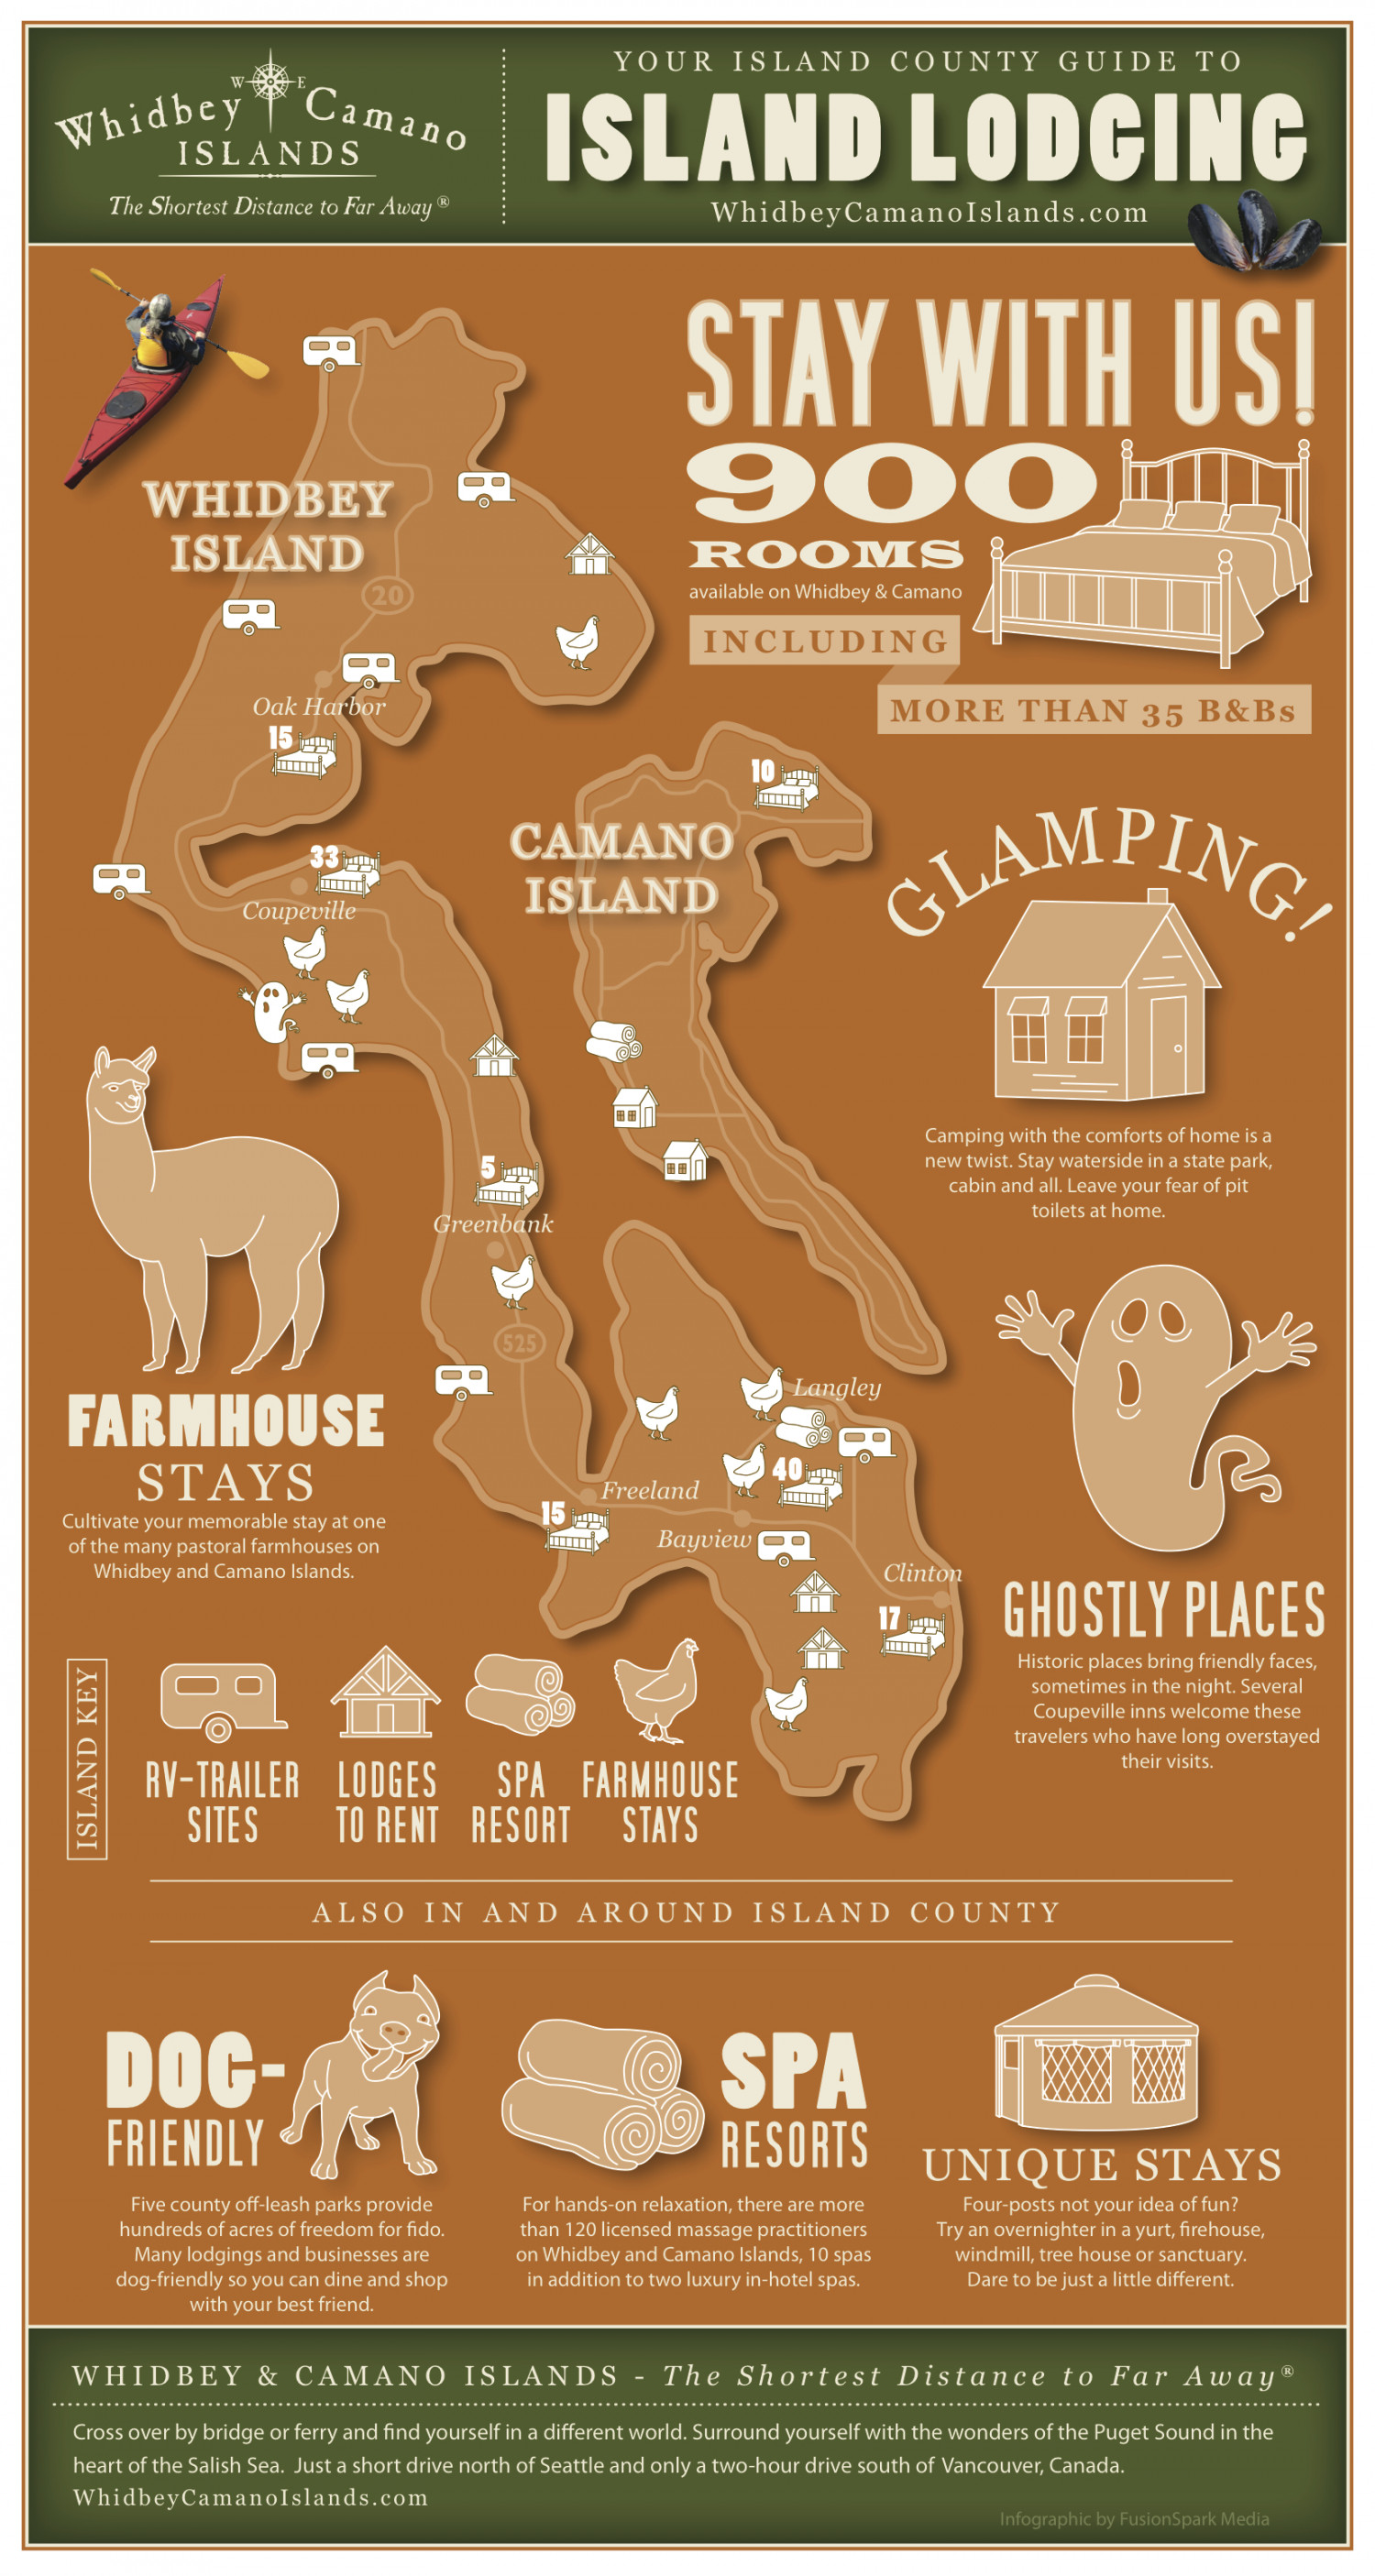 Your Island County Guide to Island Lodging Infographic